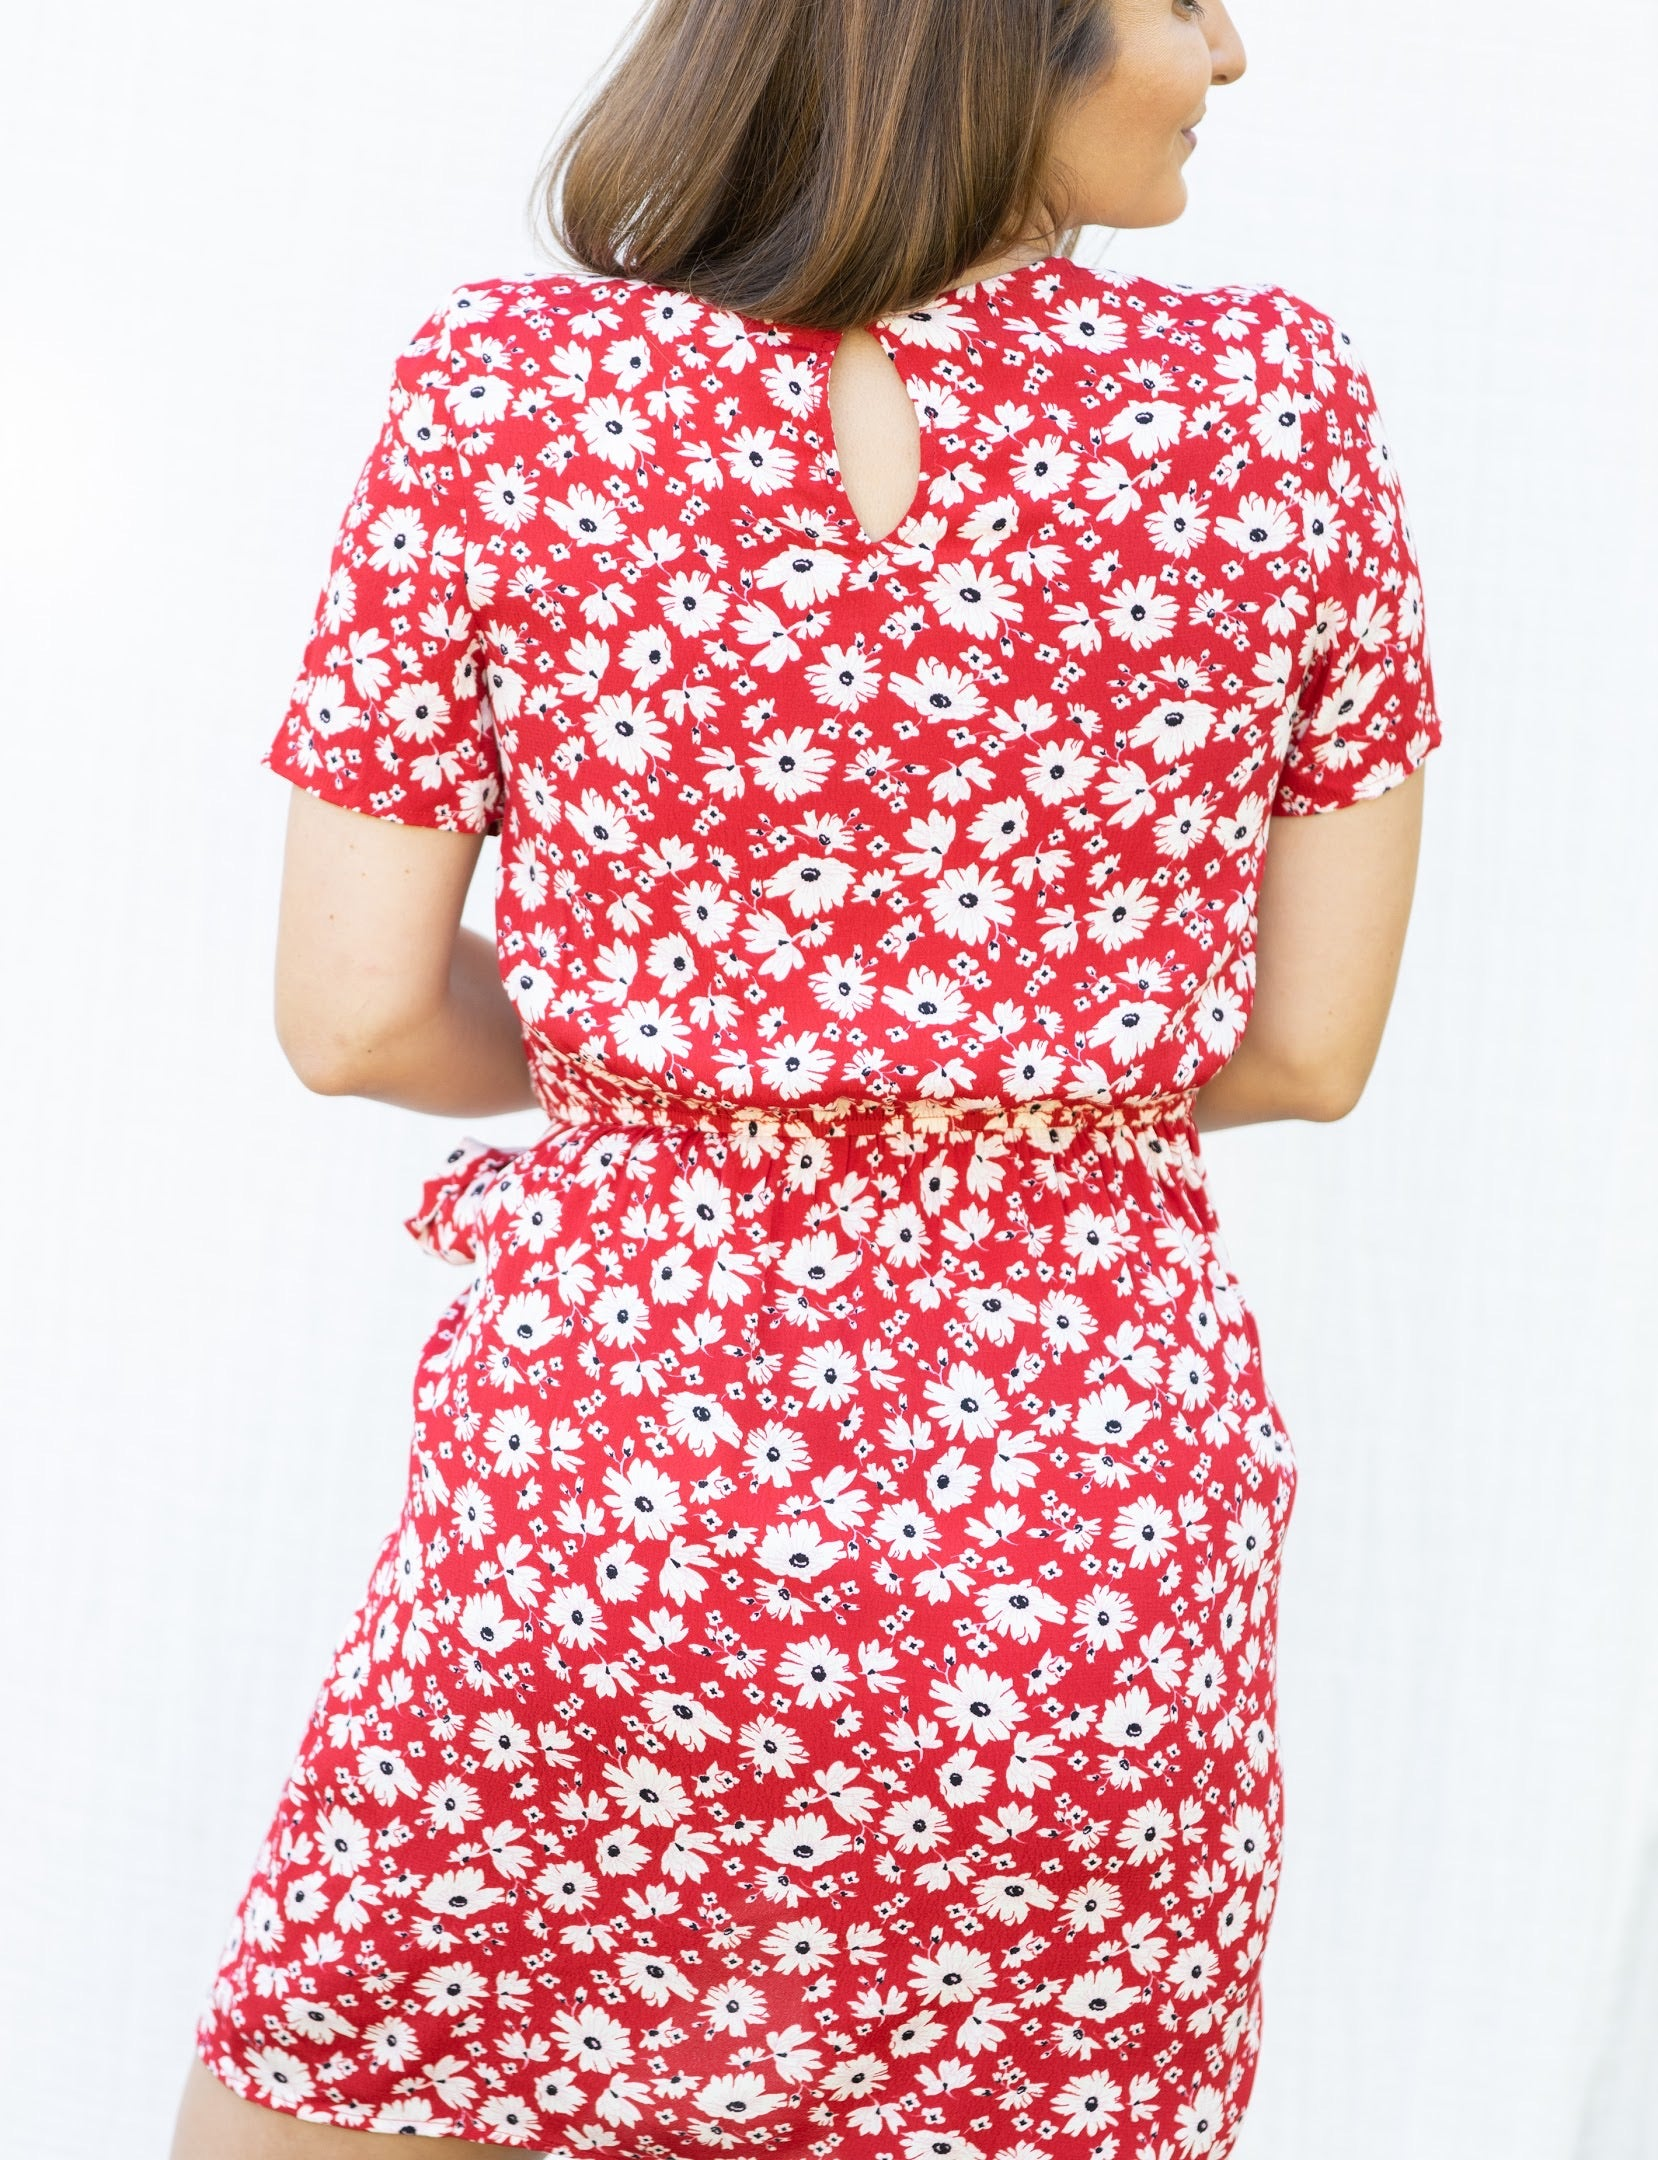 Take Your Time Red Floral Dress